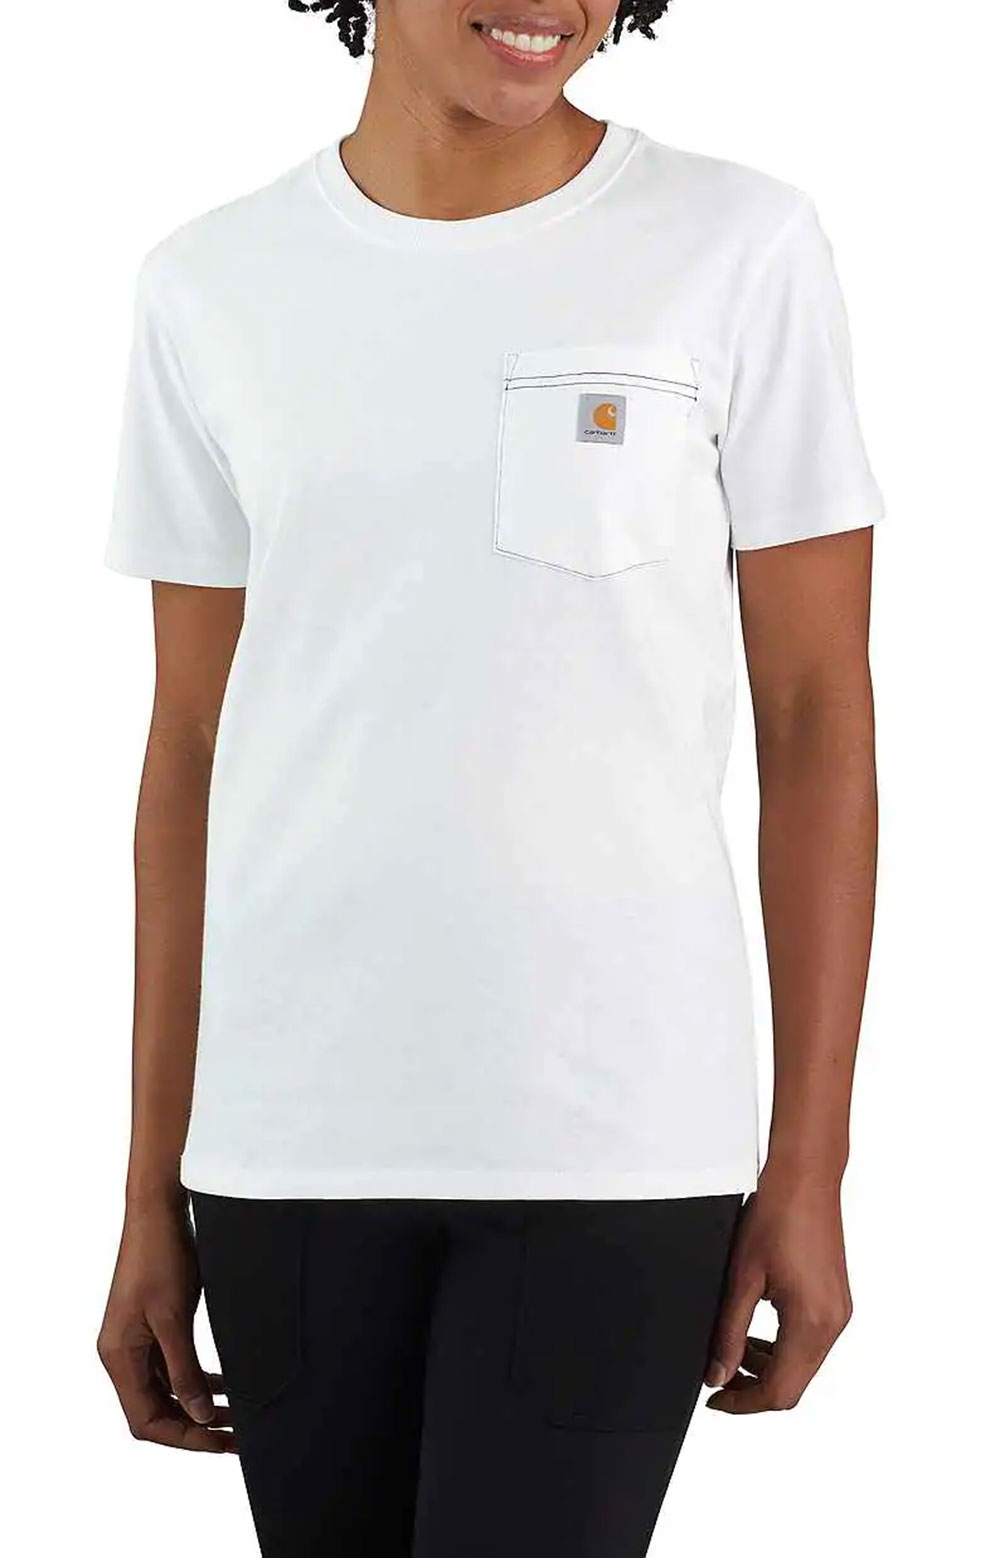 (104687) Loose Fit HW S/S Pocket Tried & True Graphic T-Shirt - White